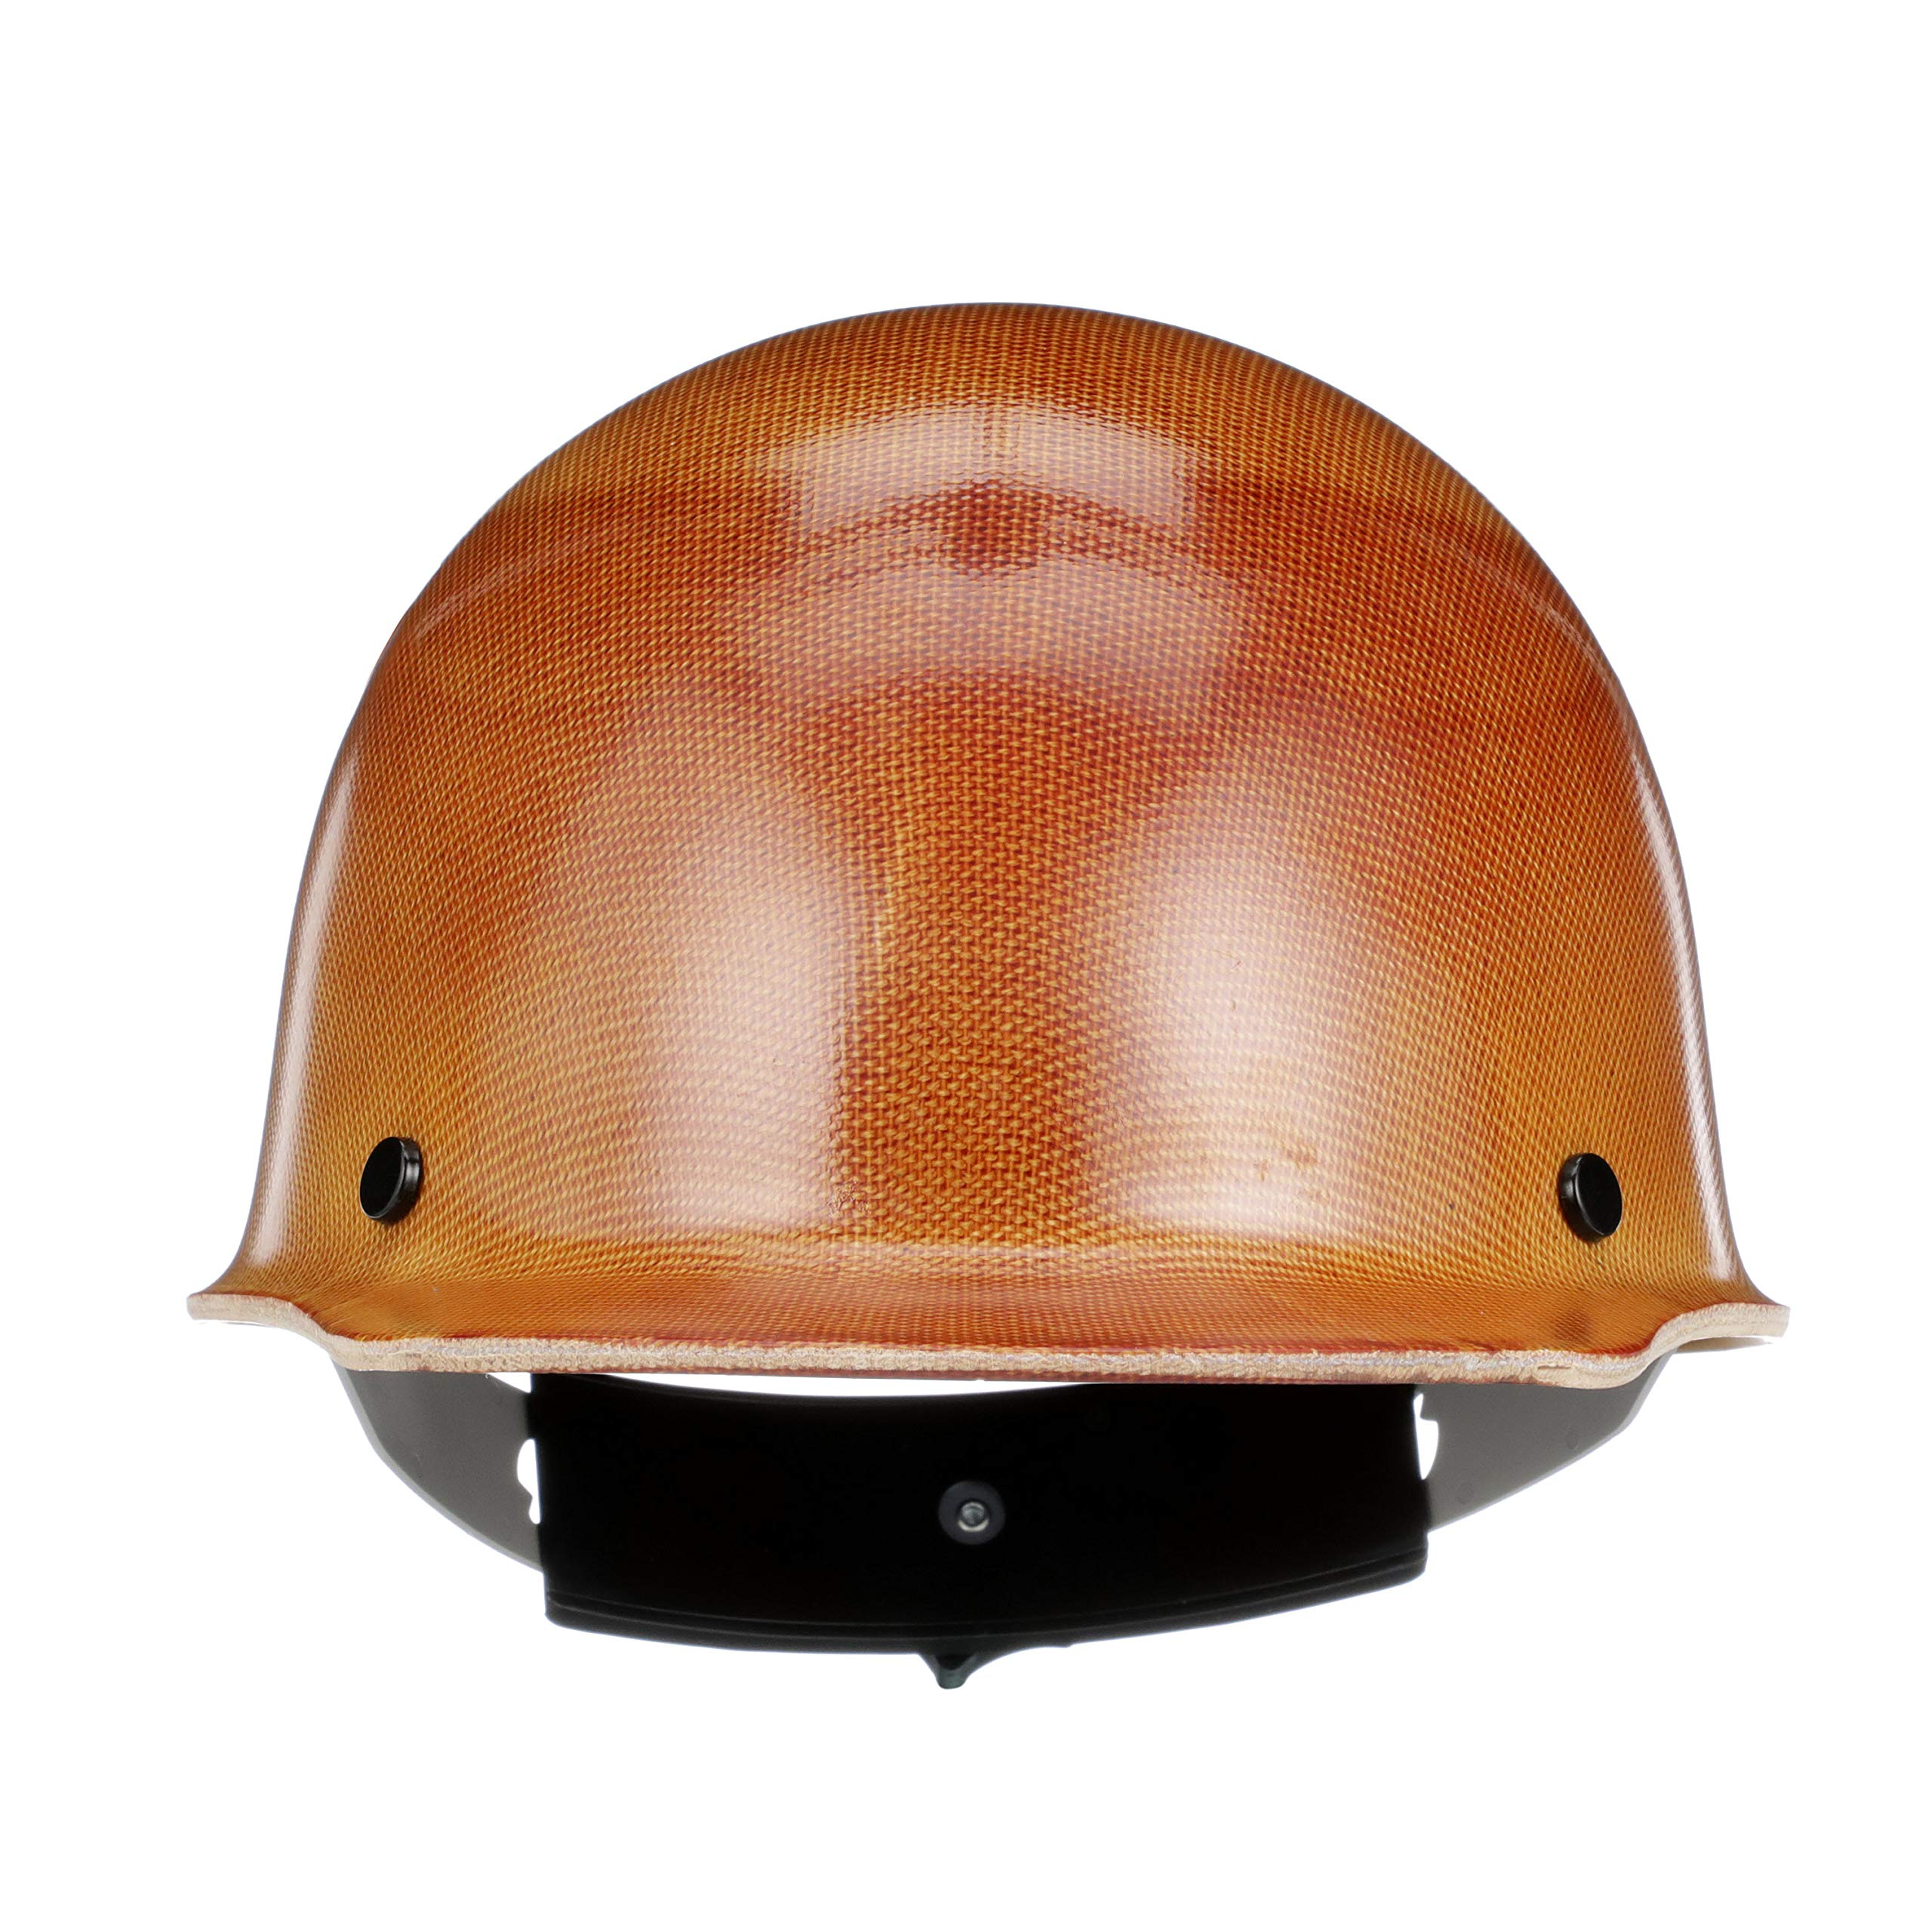 MSA 816651 Skullgard Protective Hard Hat Front Brim, Swing-Ratchet Suspension, Standard Size, Natural Tan by MSA (Image #4)